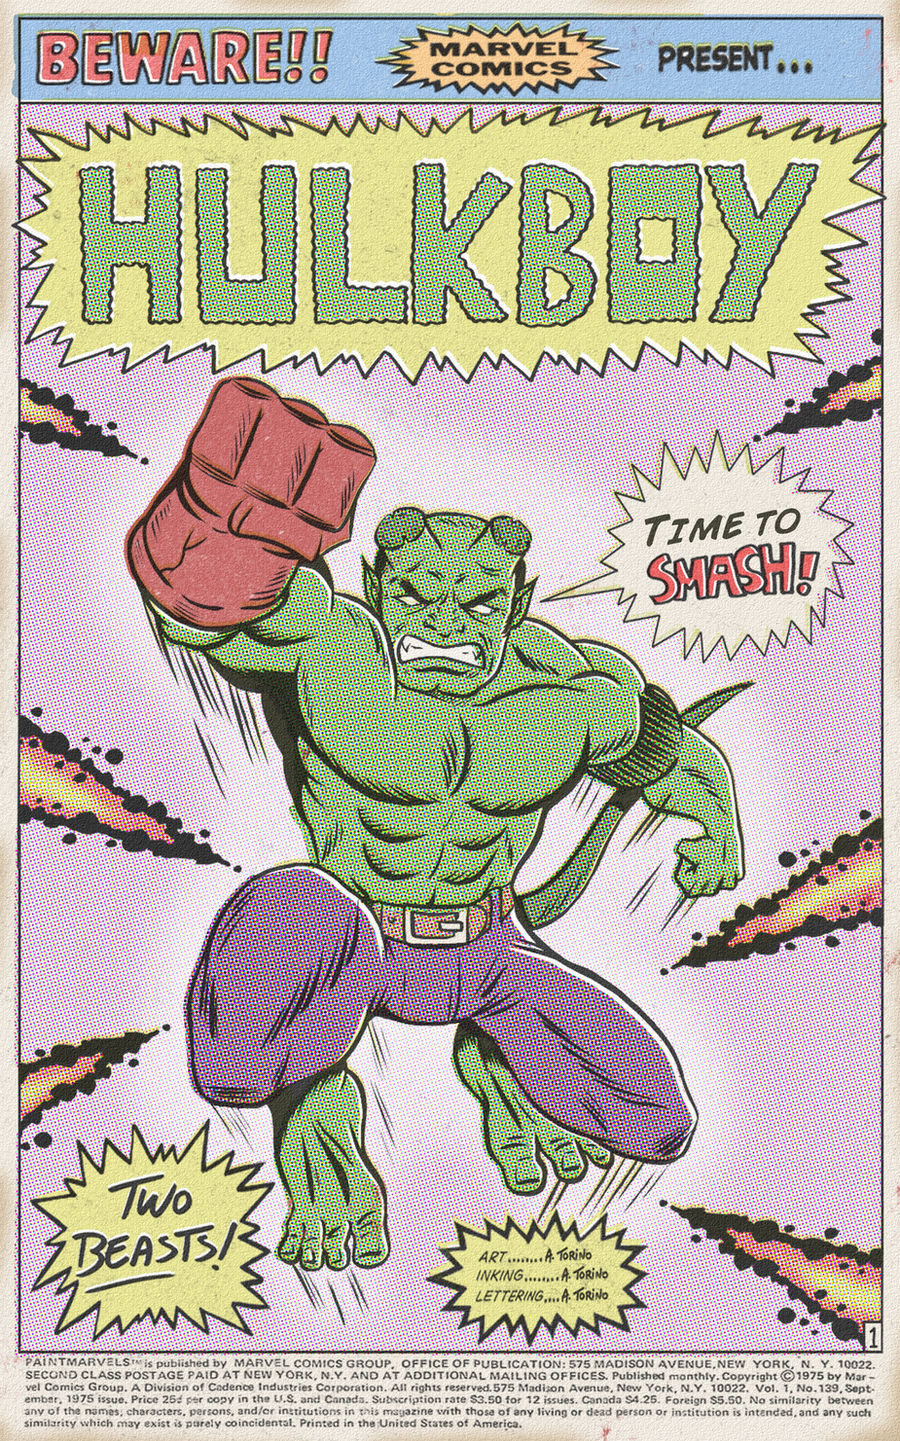 HULKBOY FROM HELL by paintmarvels